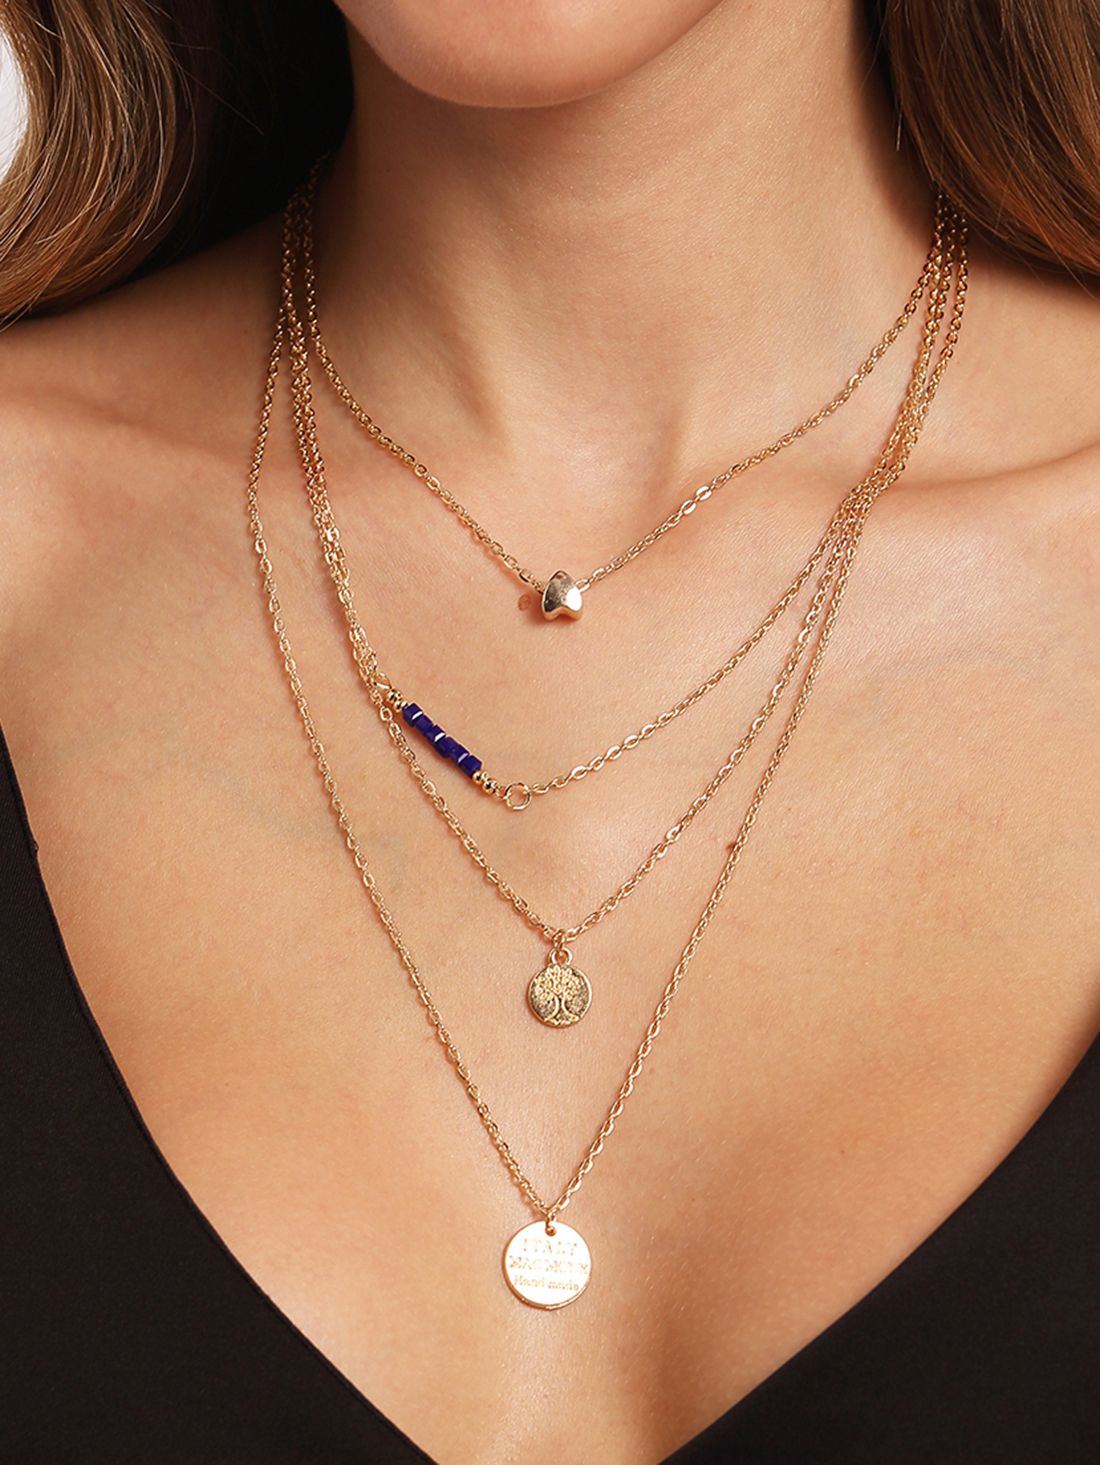 New Boho Jewelry Multi Layer moon Choker Necklaces for